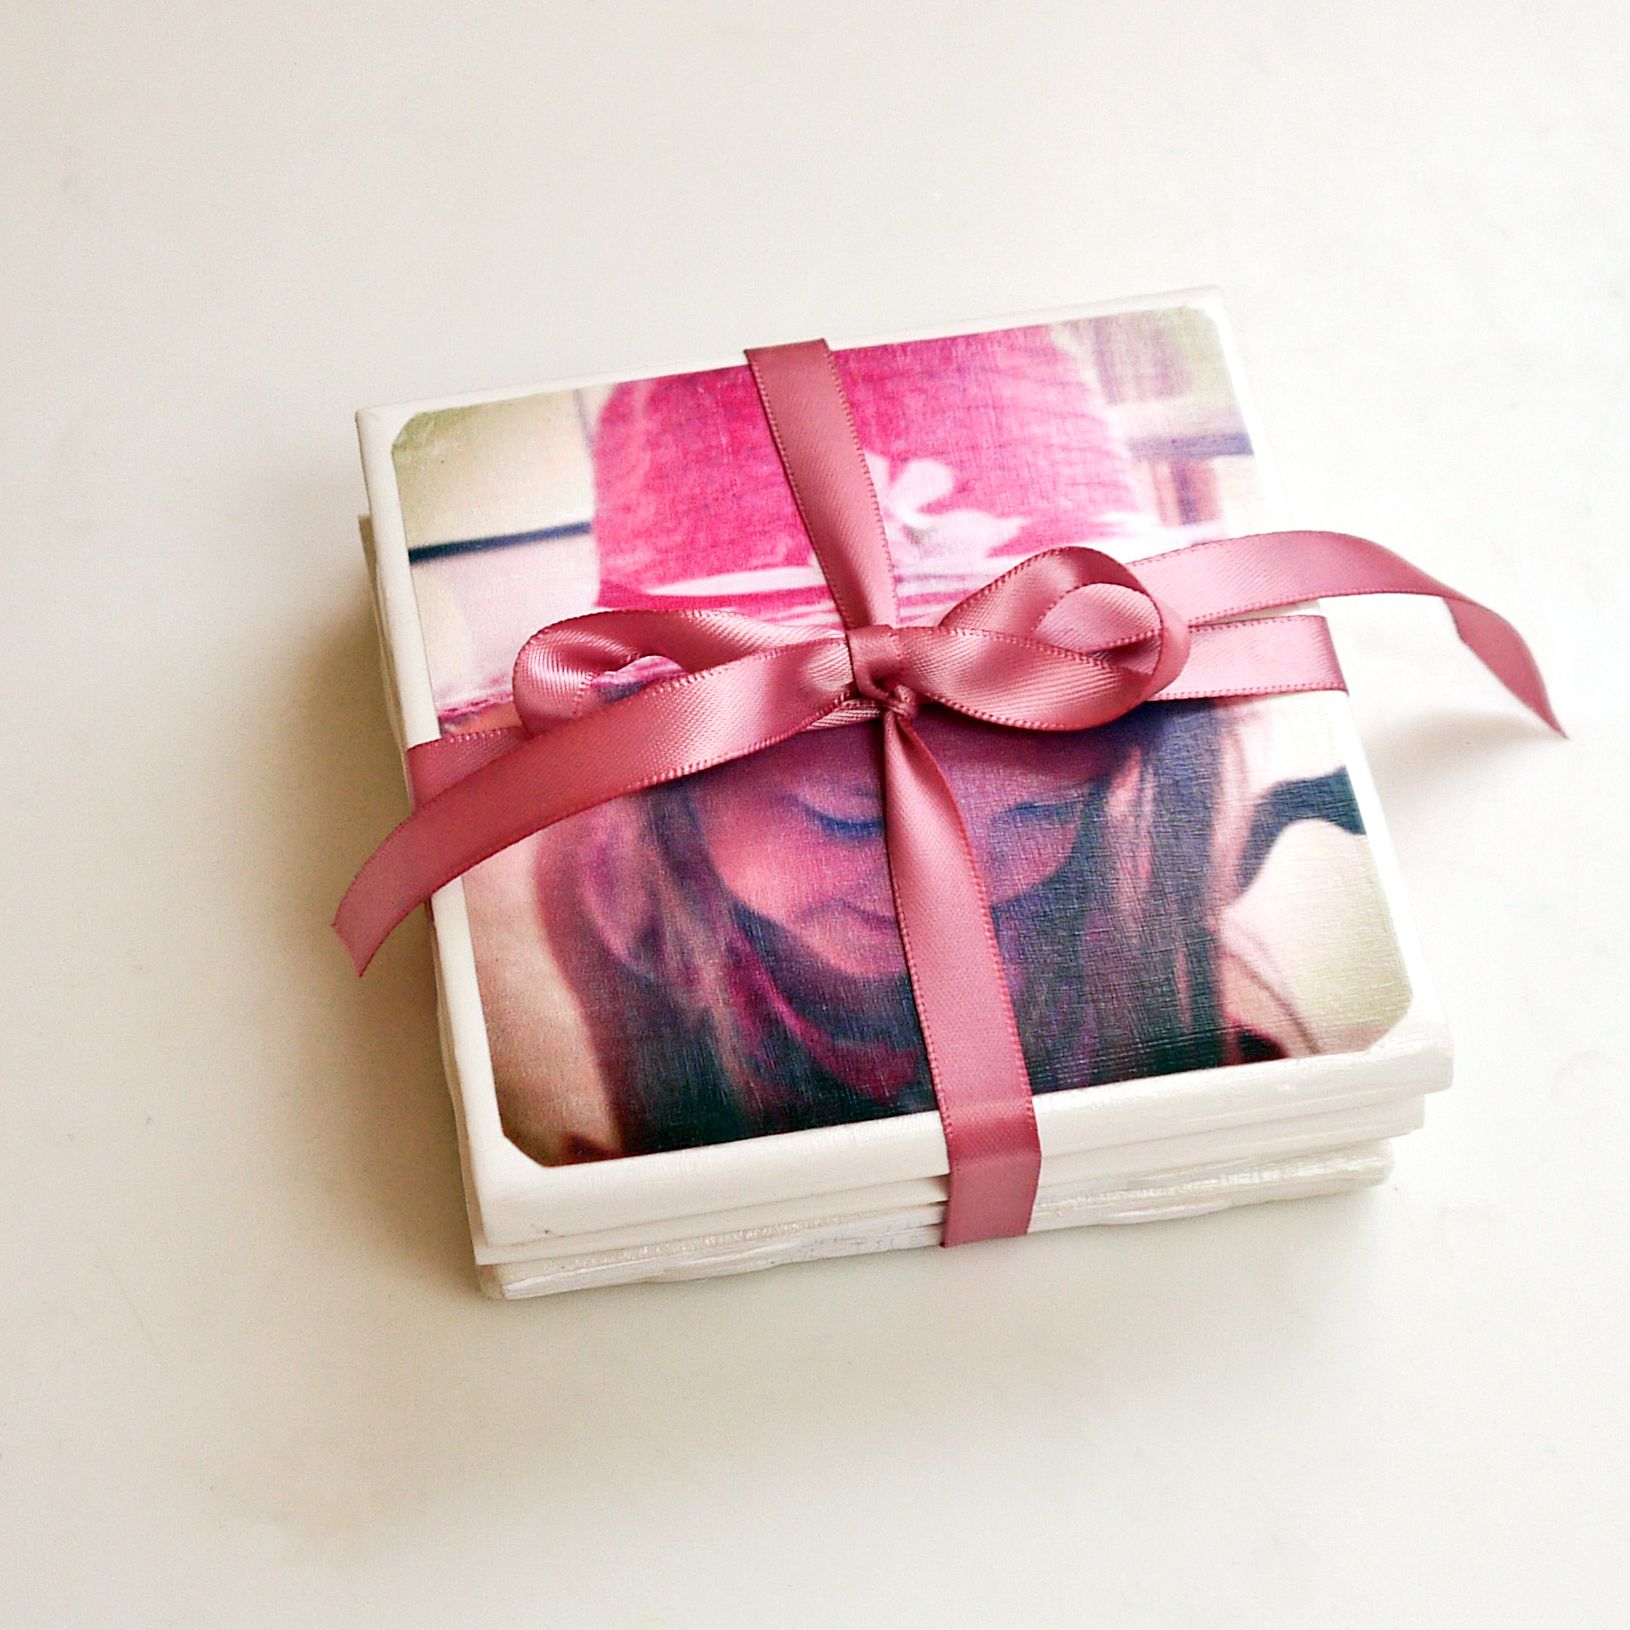 The perfect personalized gift diy tile photo coasters photo